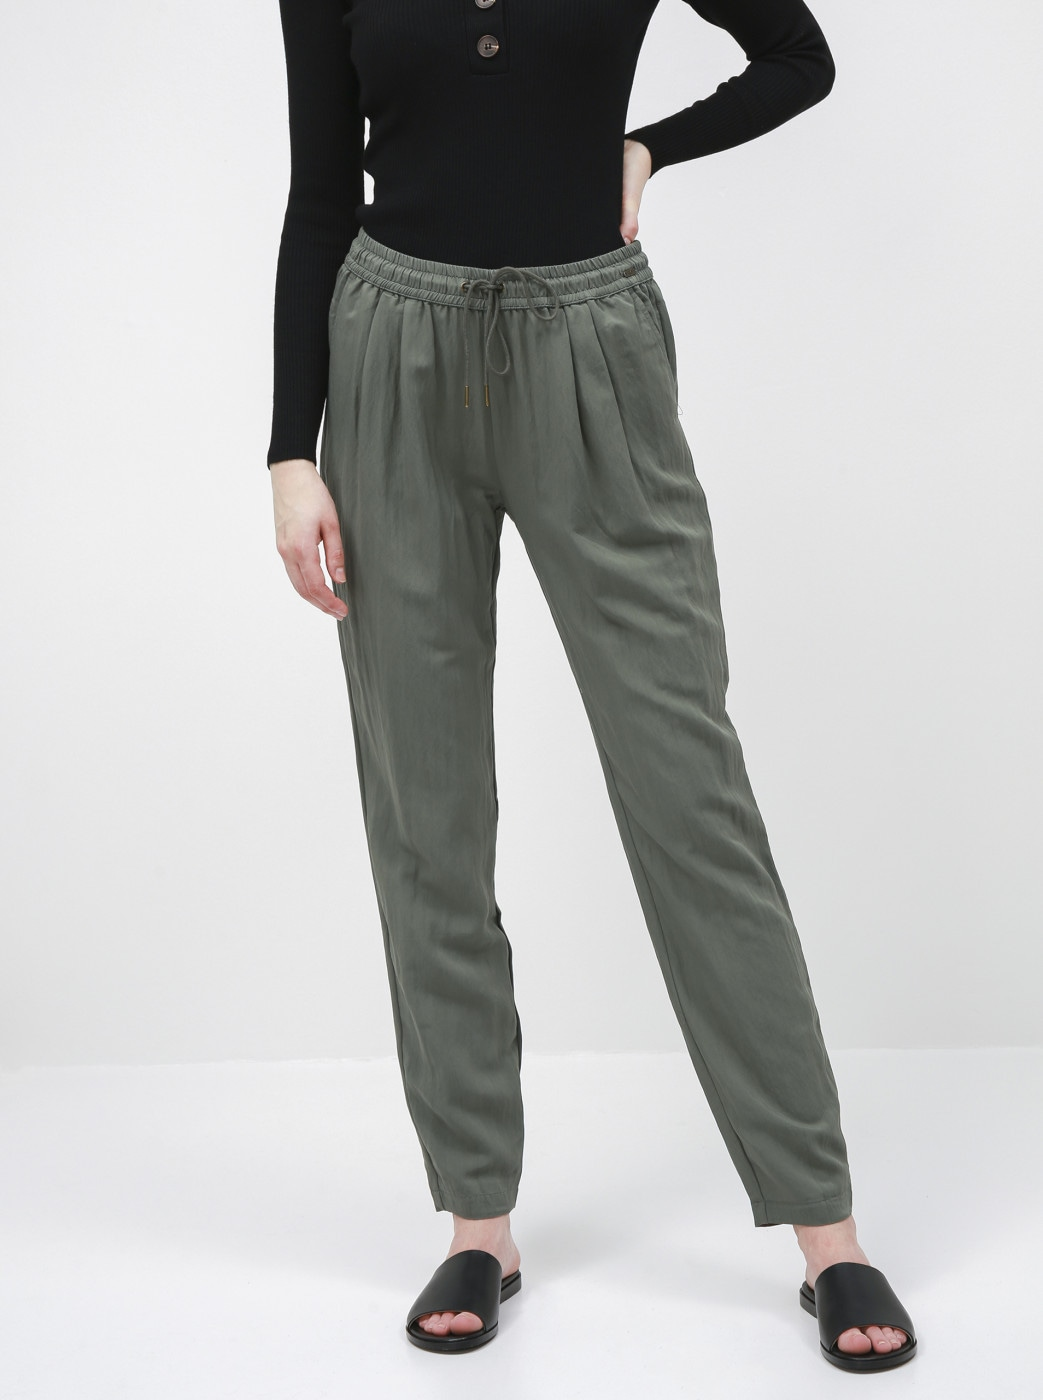 Khaki Women's Regular Fit Pants ZOOT Baseline Edita